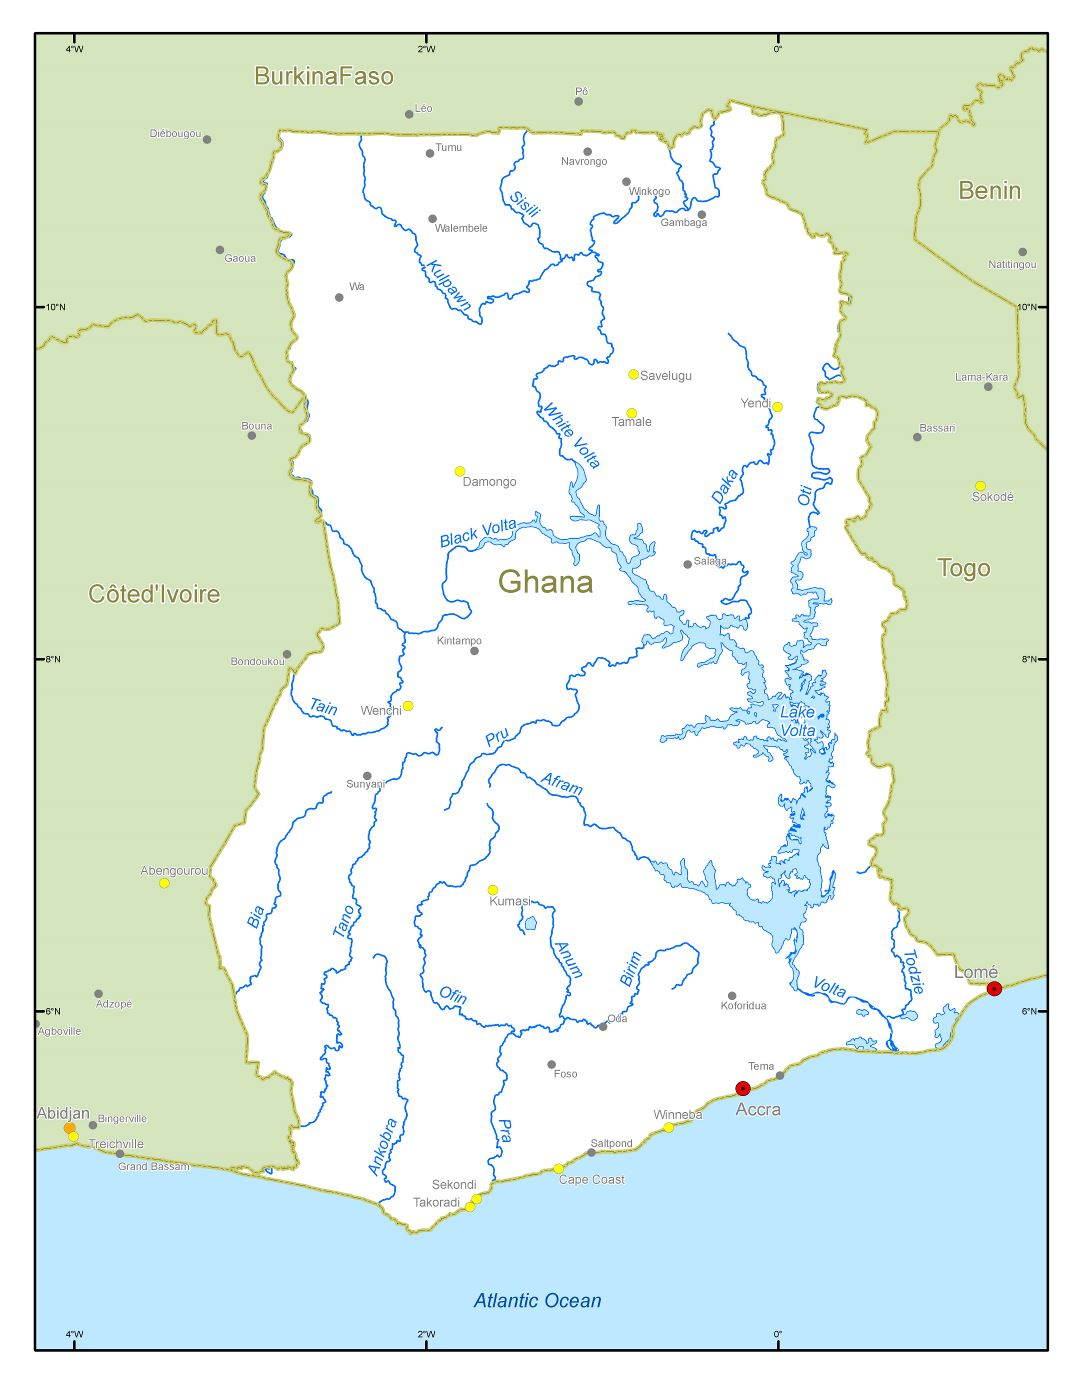 Large scale rivers and lakes map of Ghana